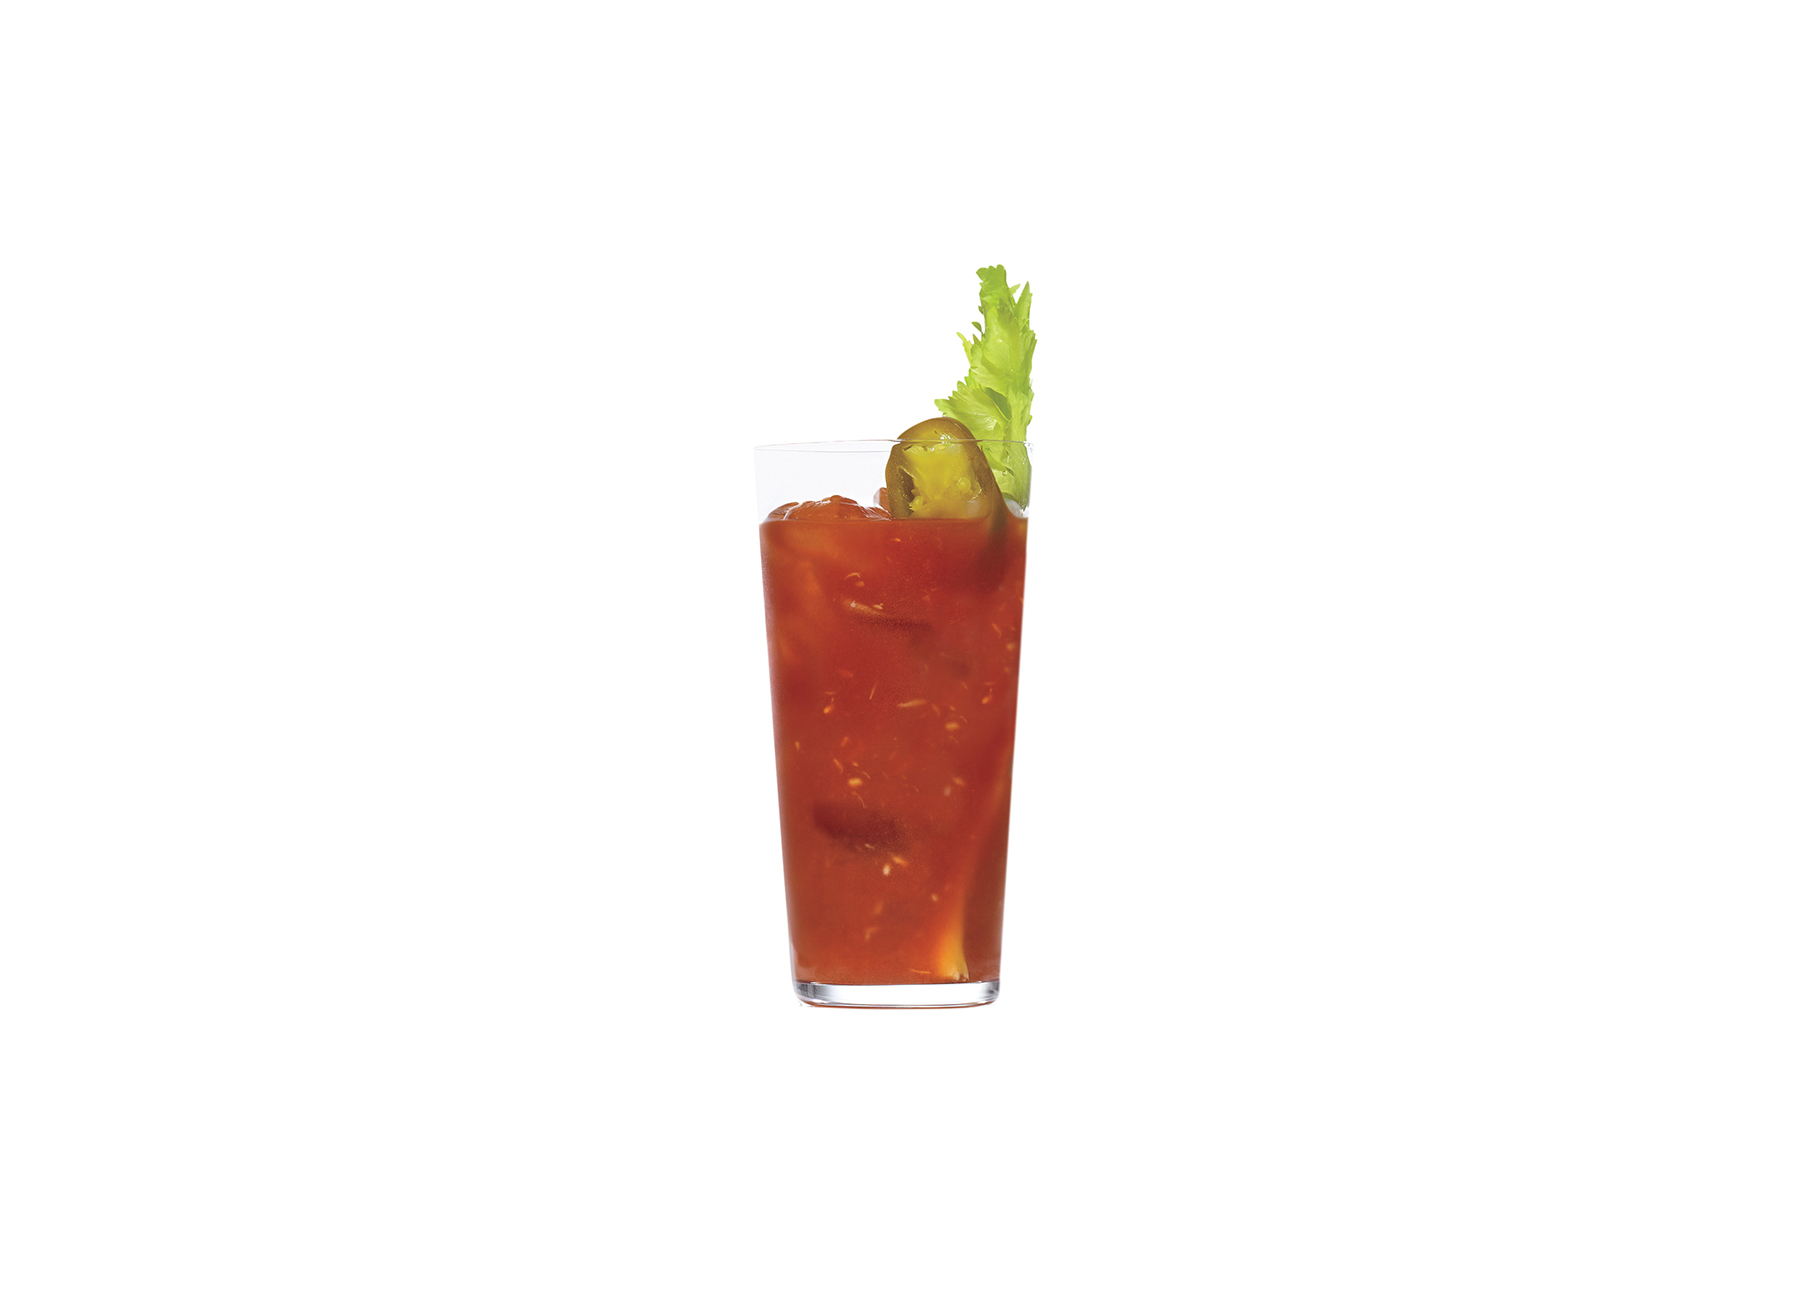 Chili-Spiced Bloody Marys